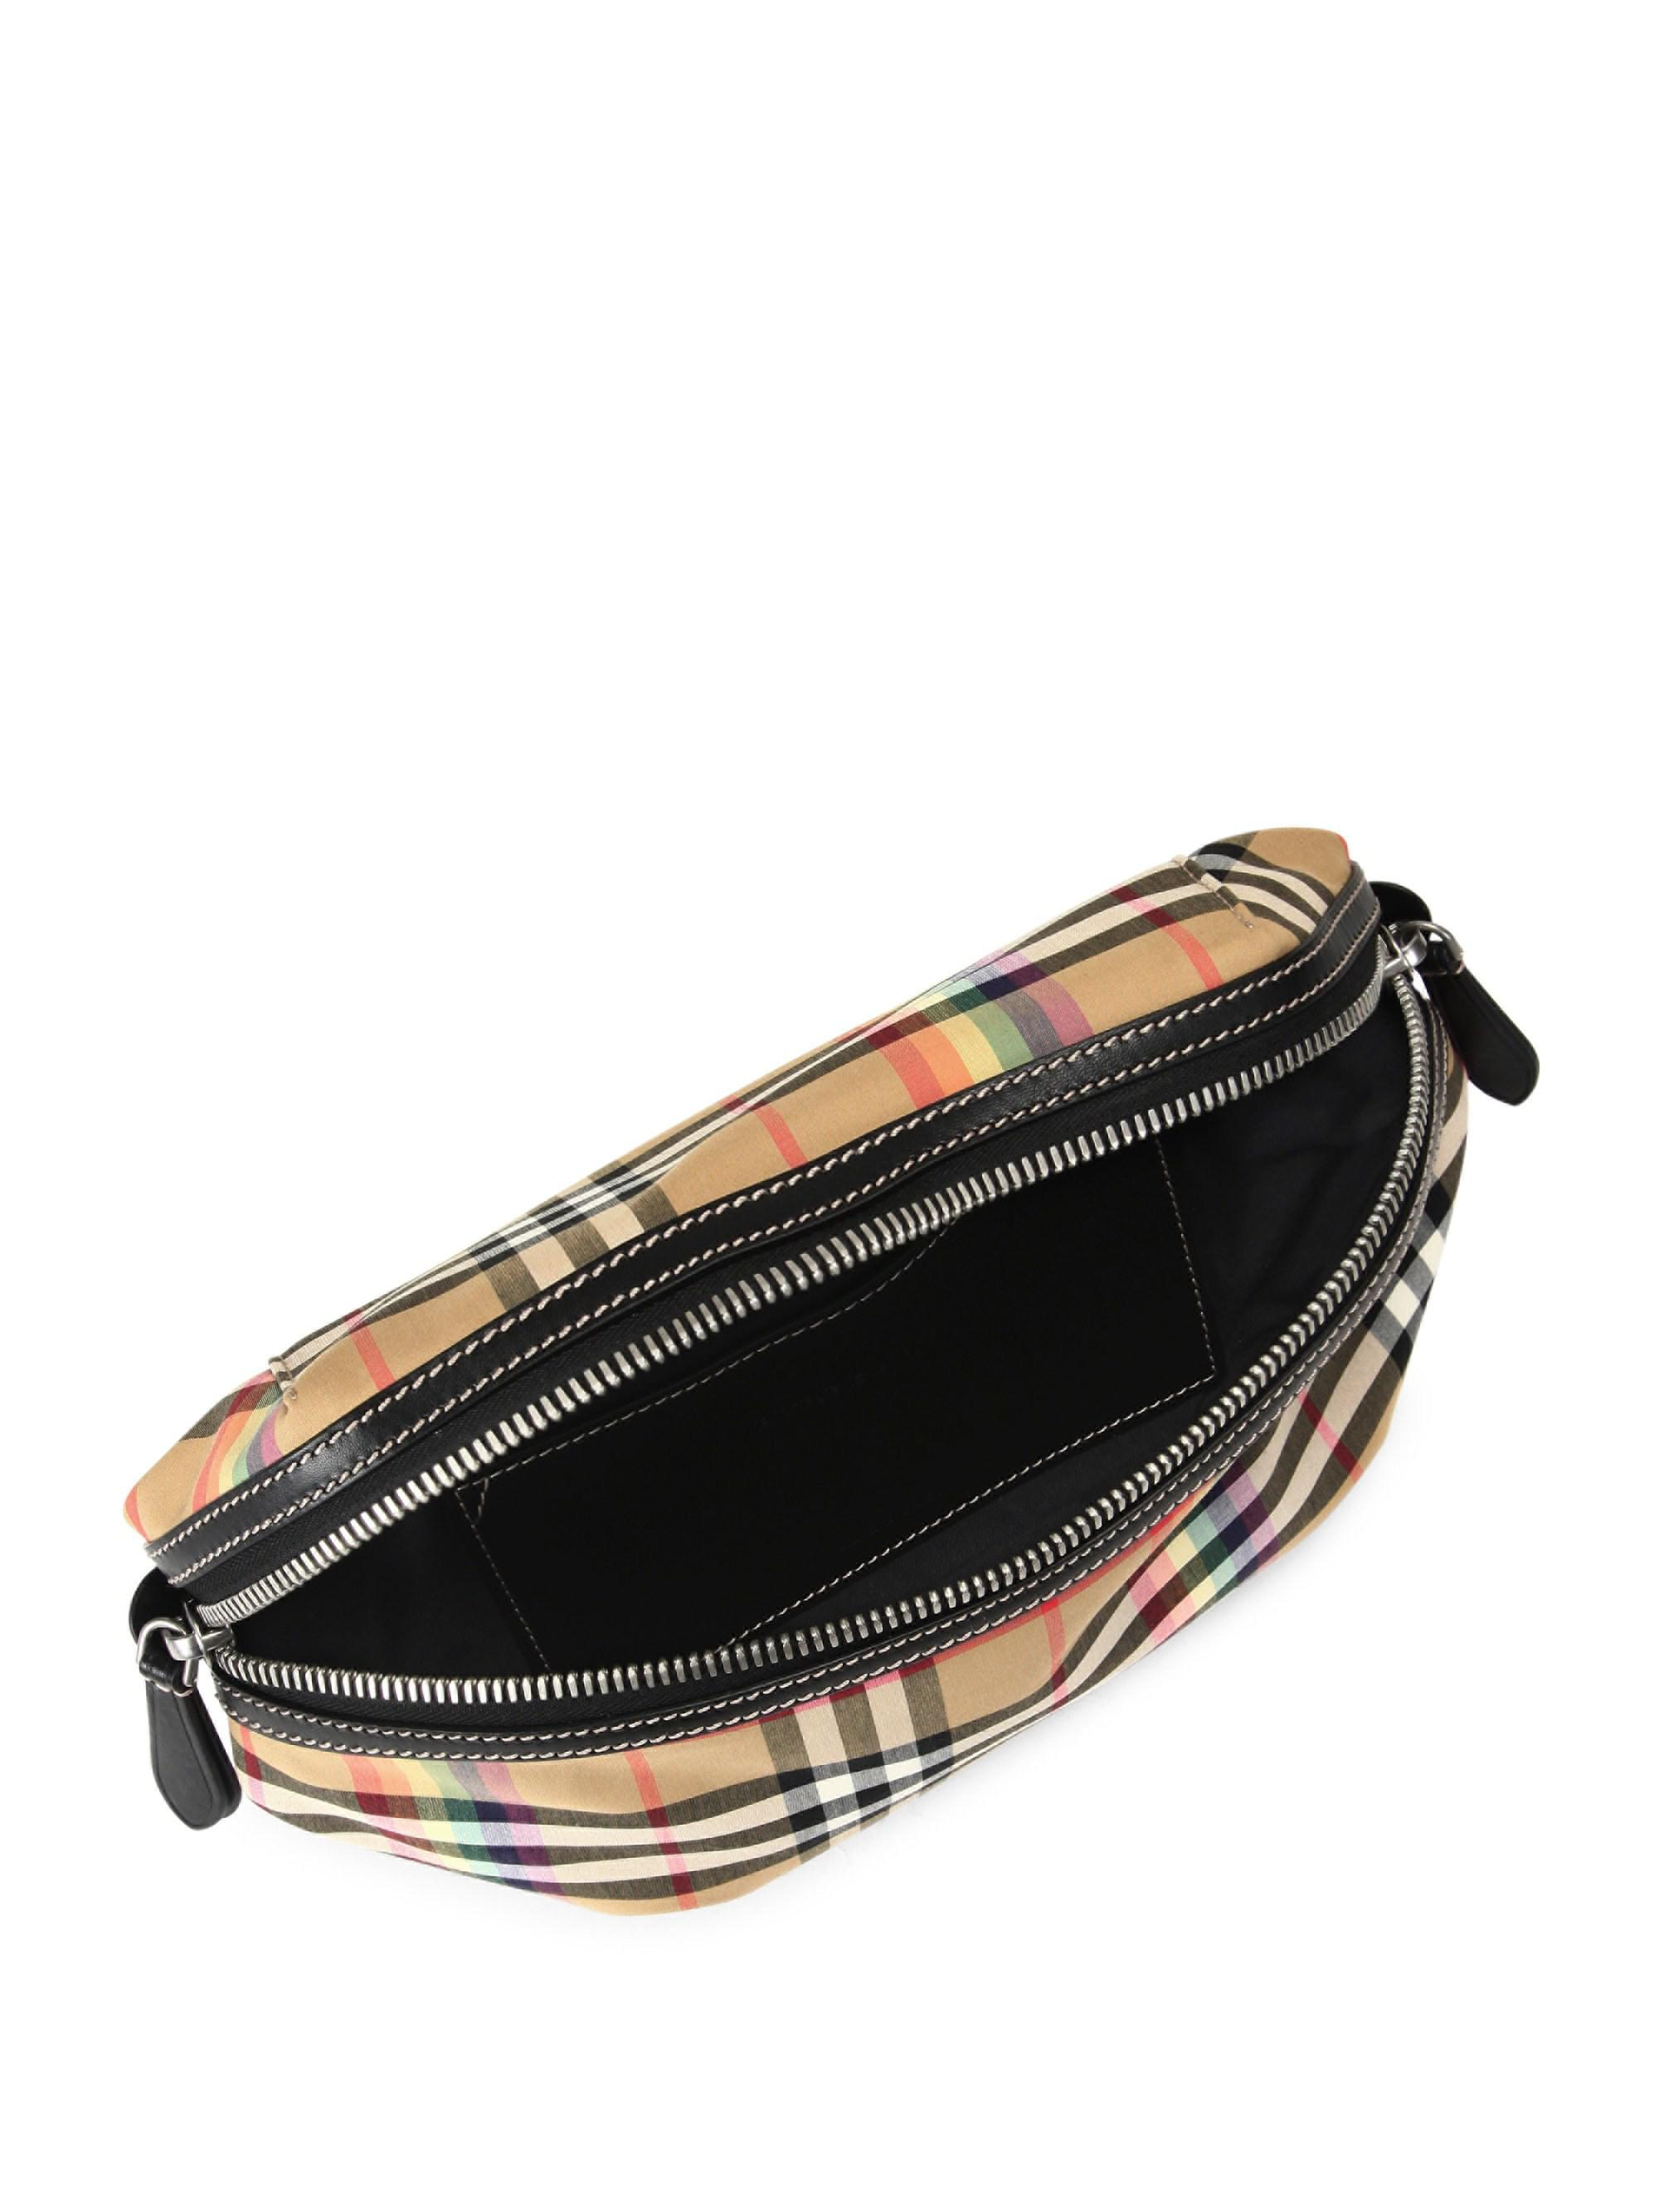 bfda1d3ea9f4 Lyst - Burberry Rainbow Vintage Check Fanny Pack for Men